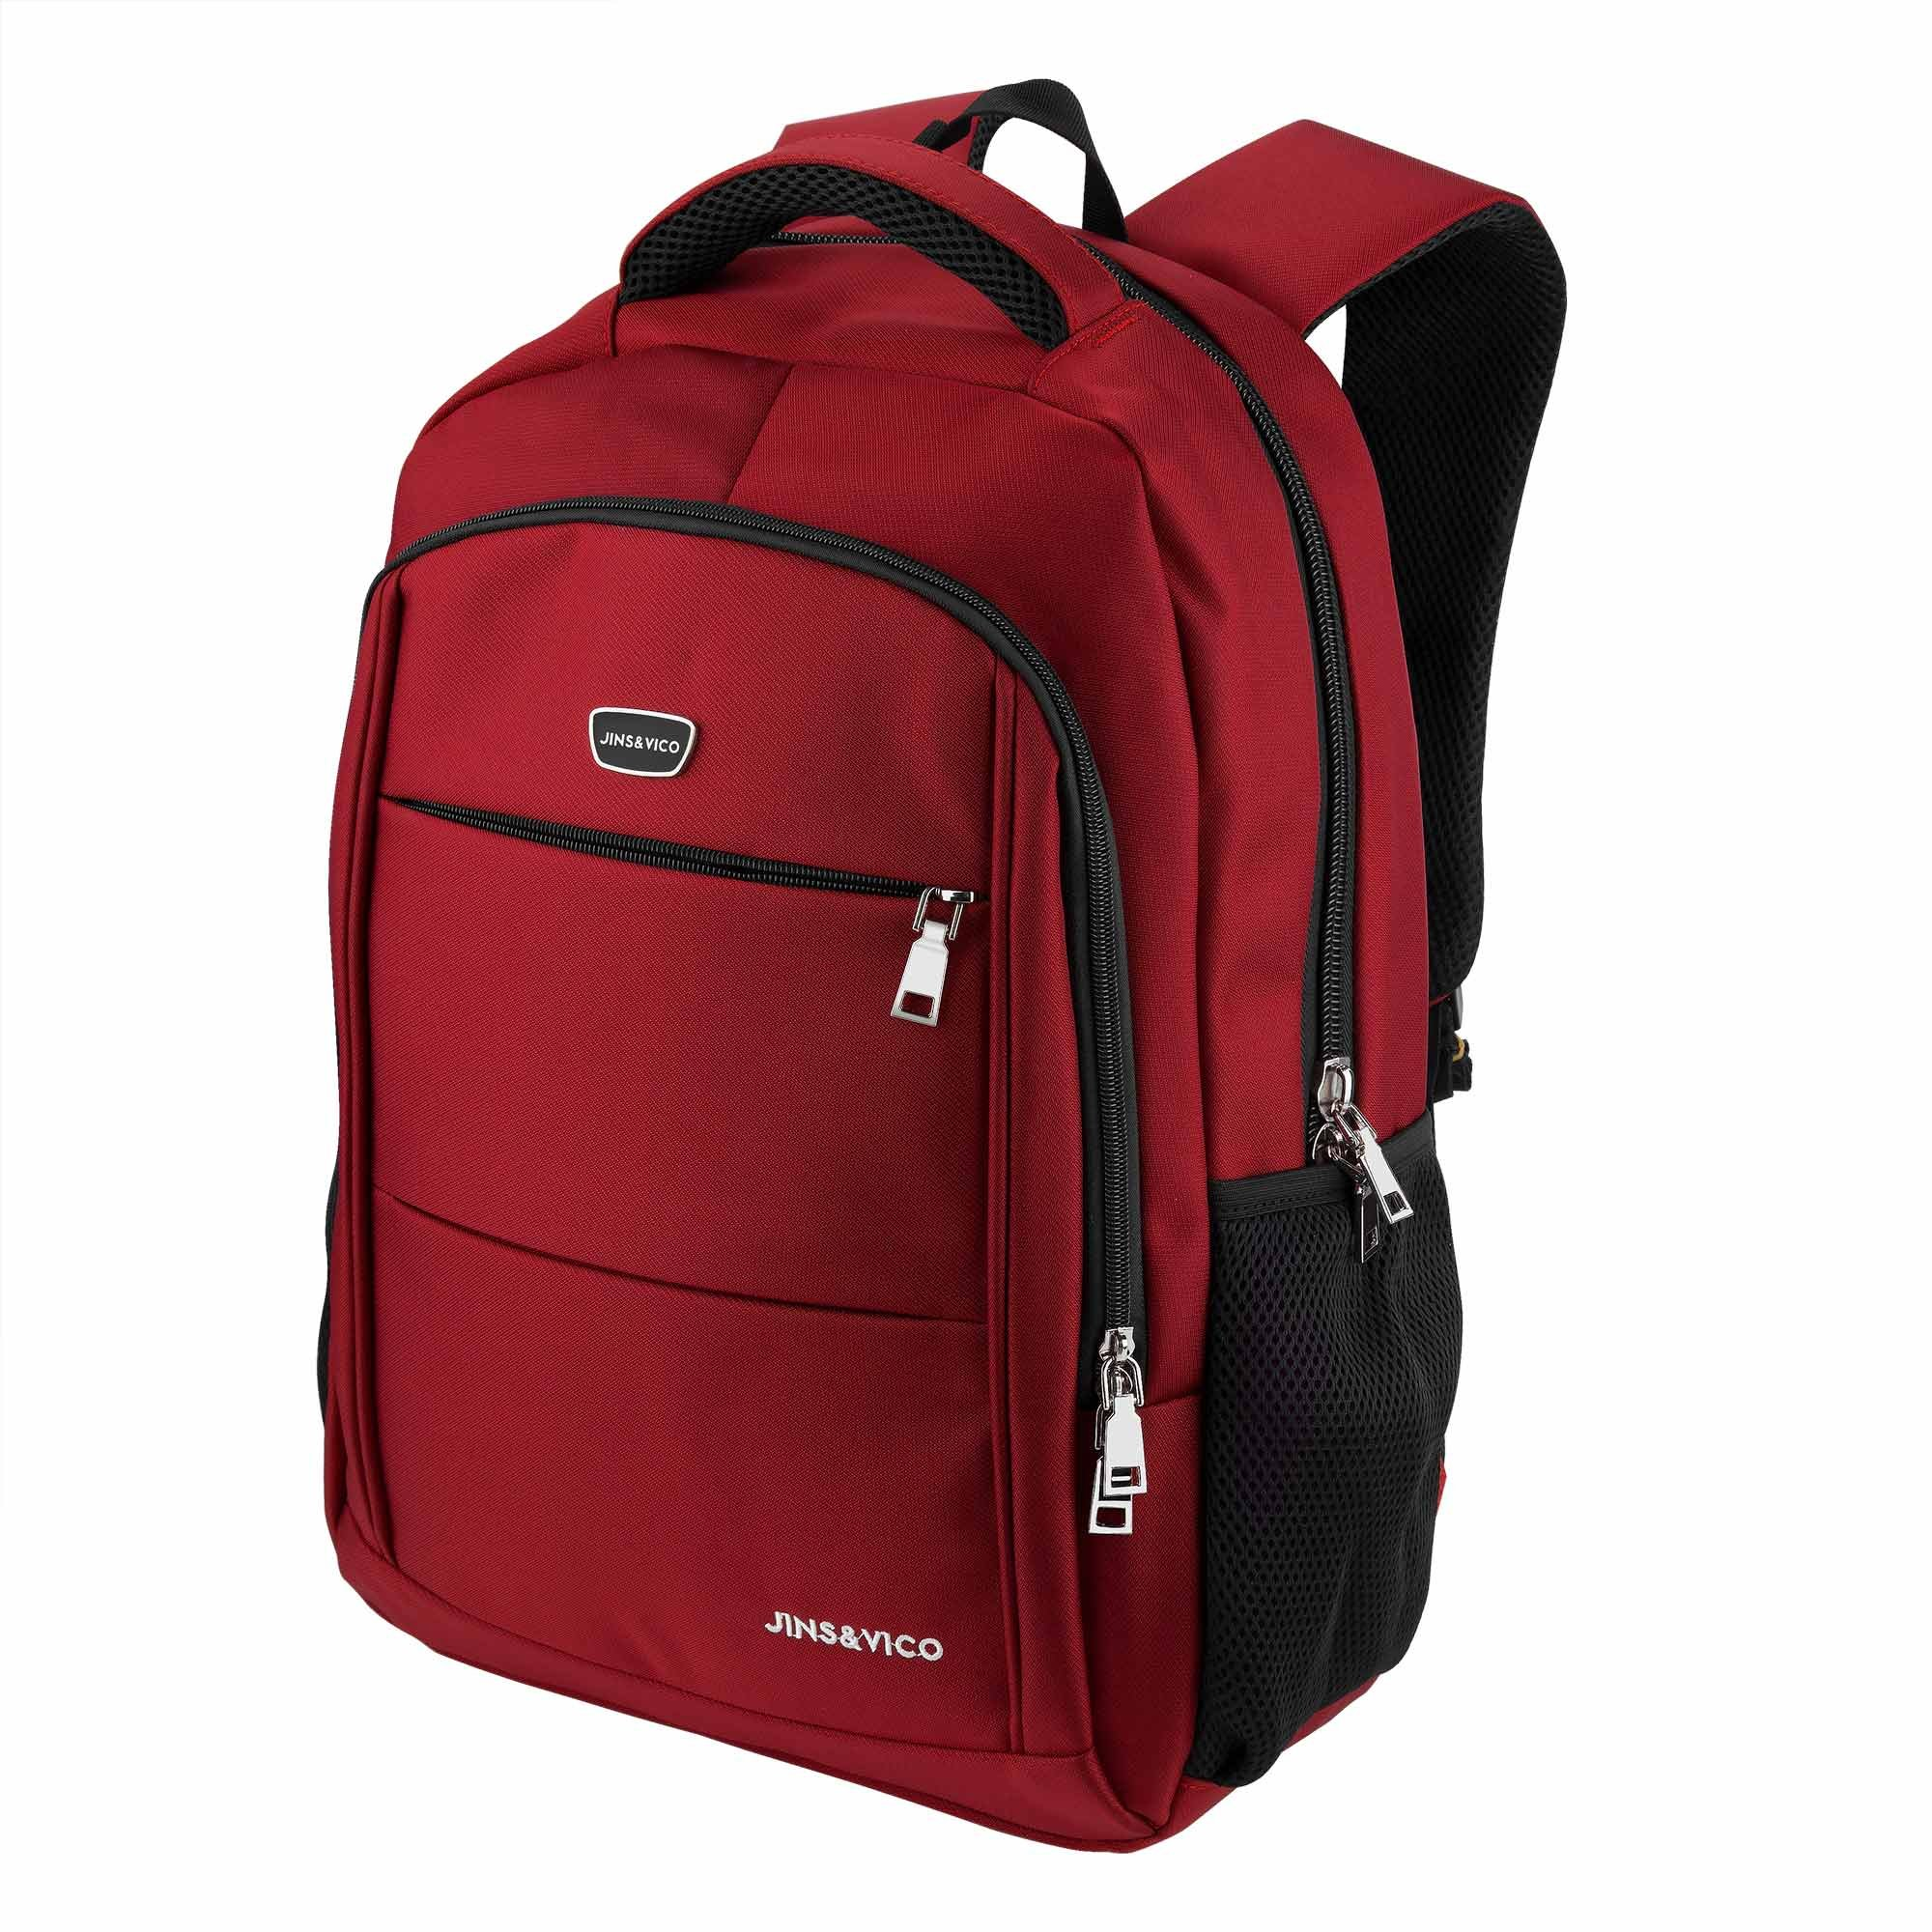 Laptop Backpack for Travel Business School Bag Multipurpose Use, Water Resistant Polyester Fabric Daypack Red